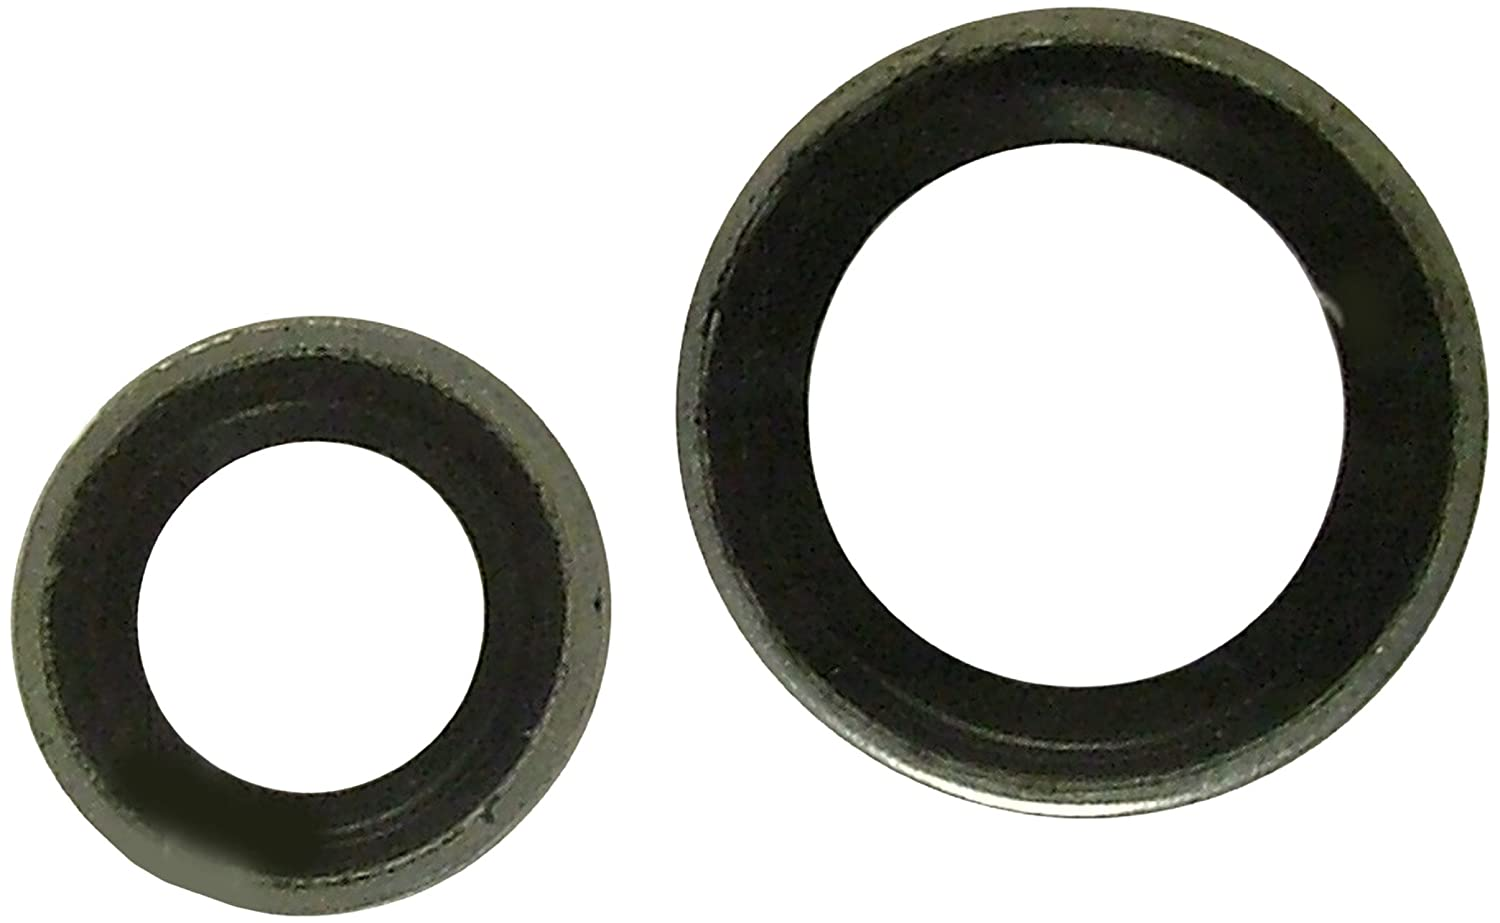 ACDelco 15-32241 GM Original Equipment Air Conditioning Compressor Port Seal Kit with Seal Washers 1532241ACM